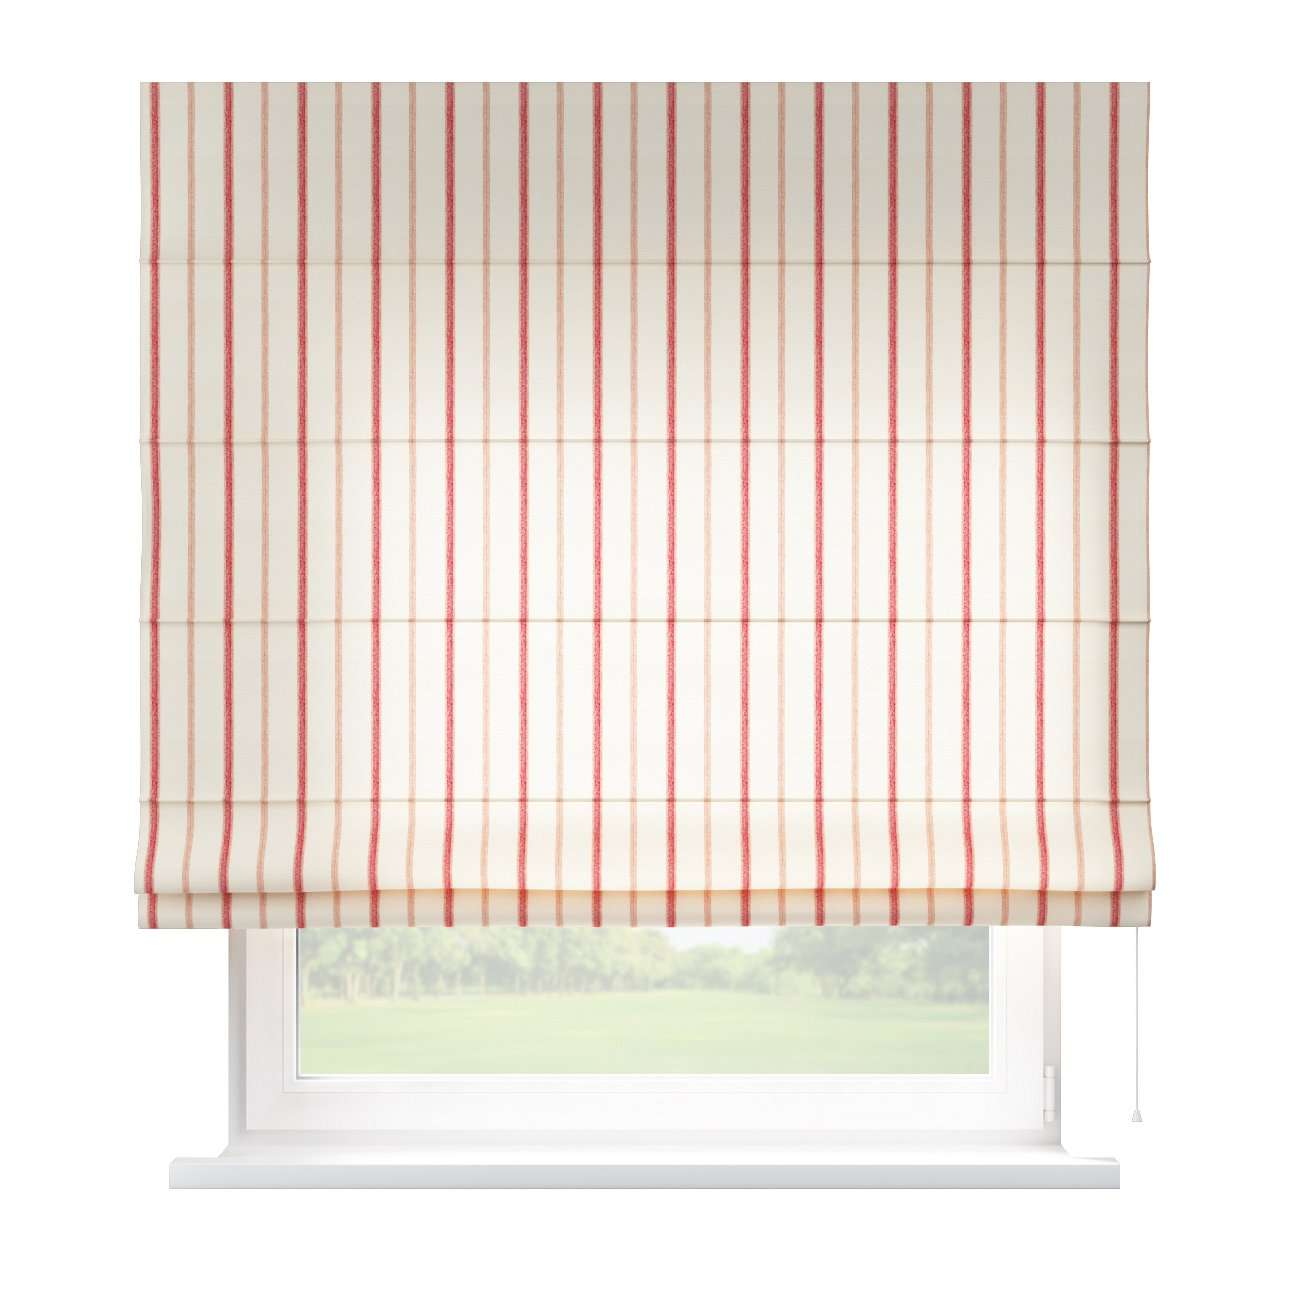 Capri roman blind 80 x 170 cm (31.5 x 67 inch) in collection Avinon, fabric: 129-15